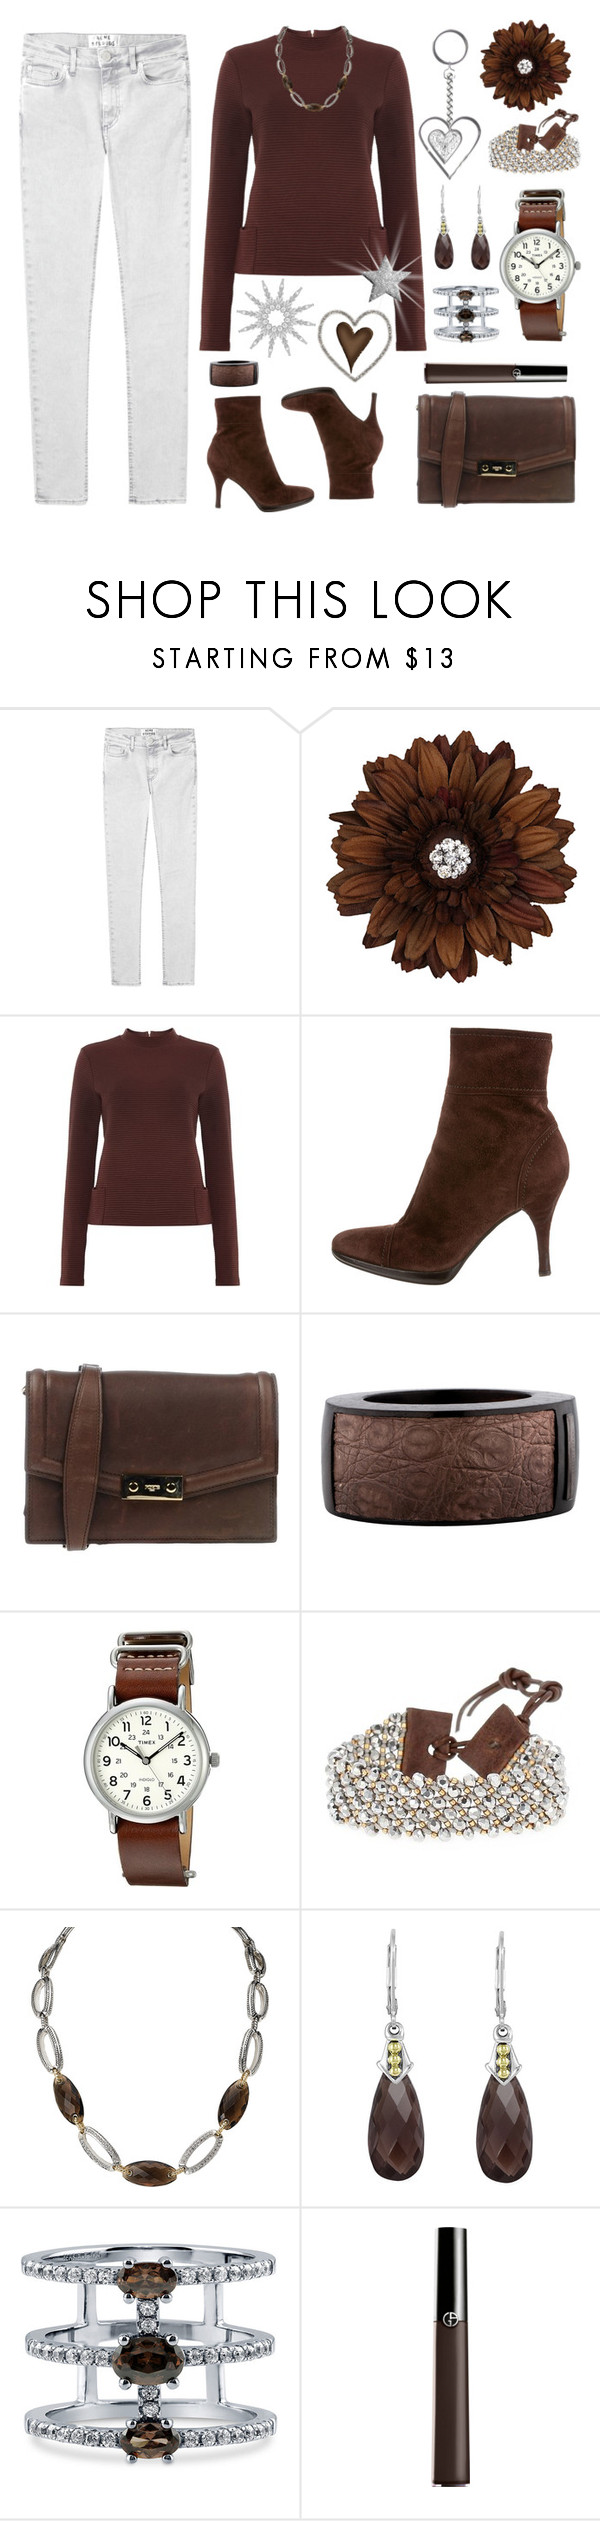 """Ready for Friday!"" by cindy-for-fashion ❤ liked on Polyvore featuring Acne Studios, Oui, Sergio Rossi, Ports 1961, Burberry, Timex, Chan Luu, Avanti, Lagos and BERRICLE"